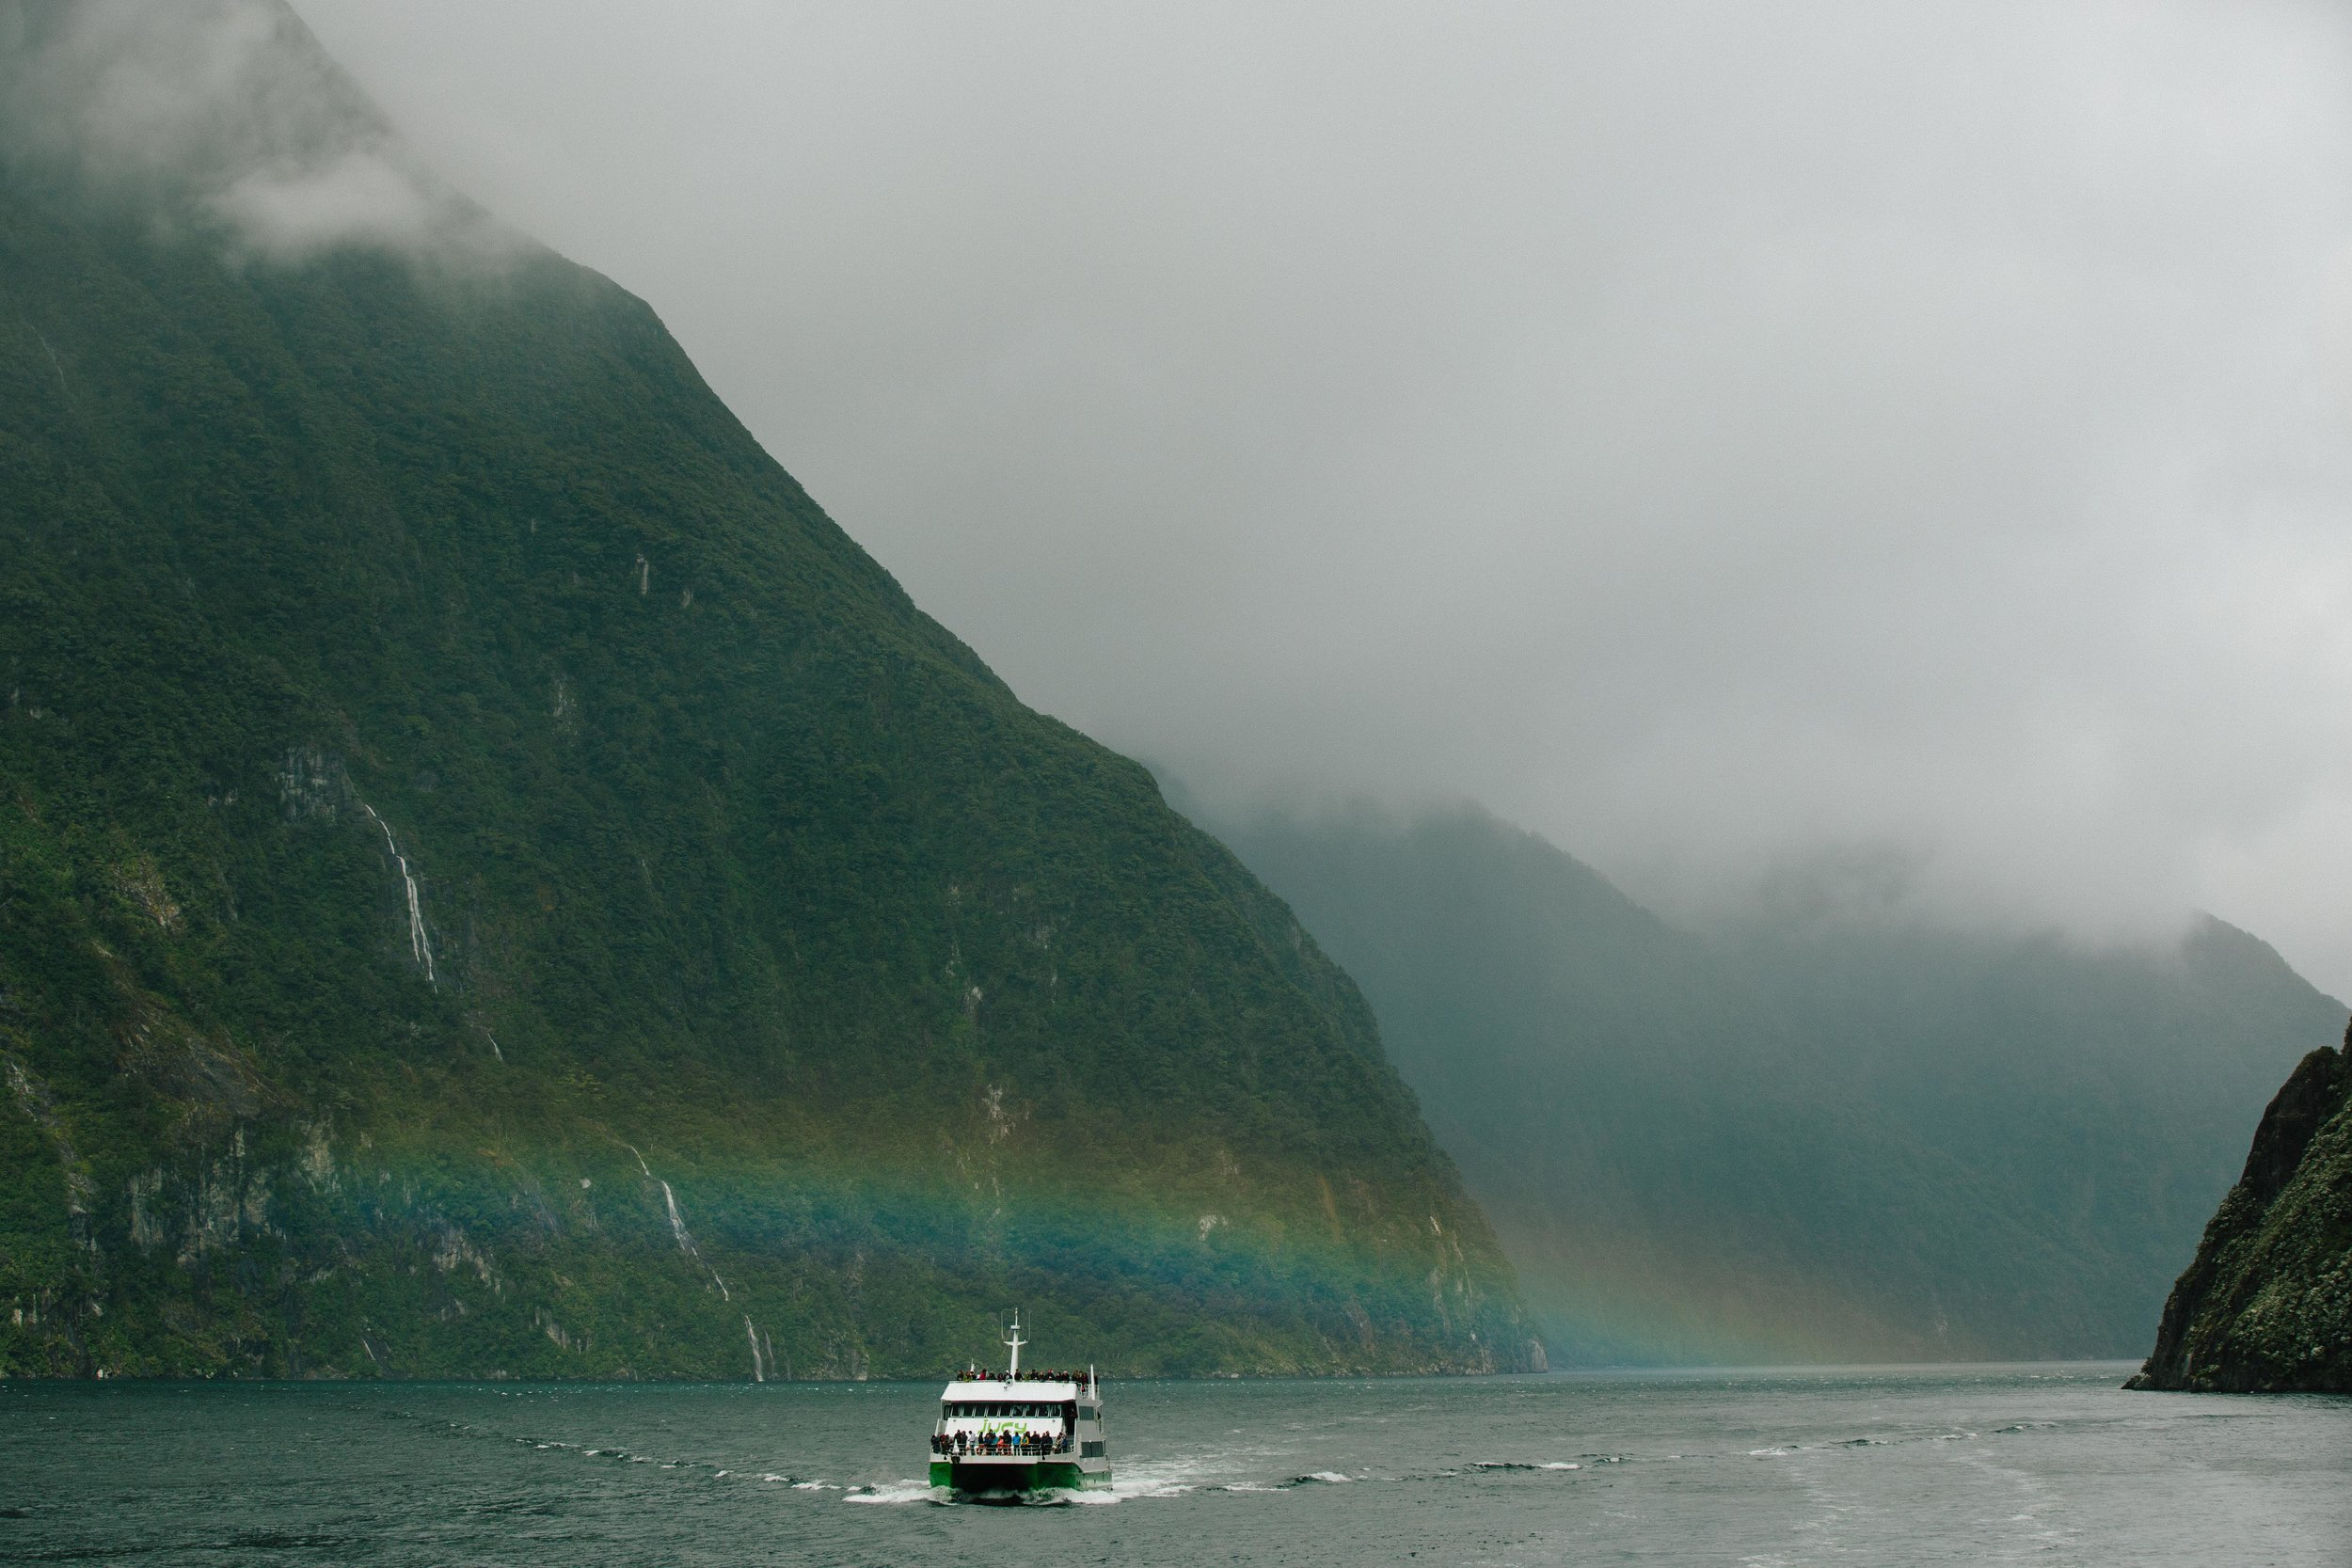 Boat-Milford Sound-New Zealand-Fjords.jpg